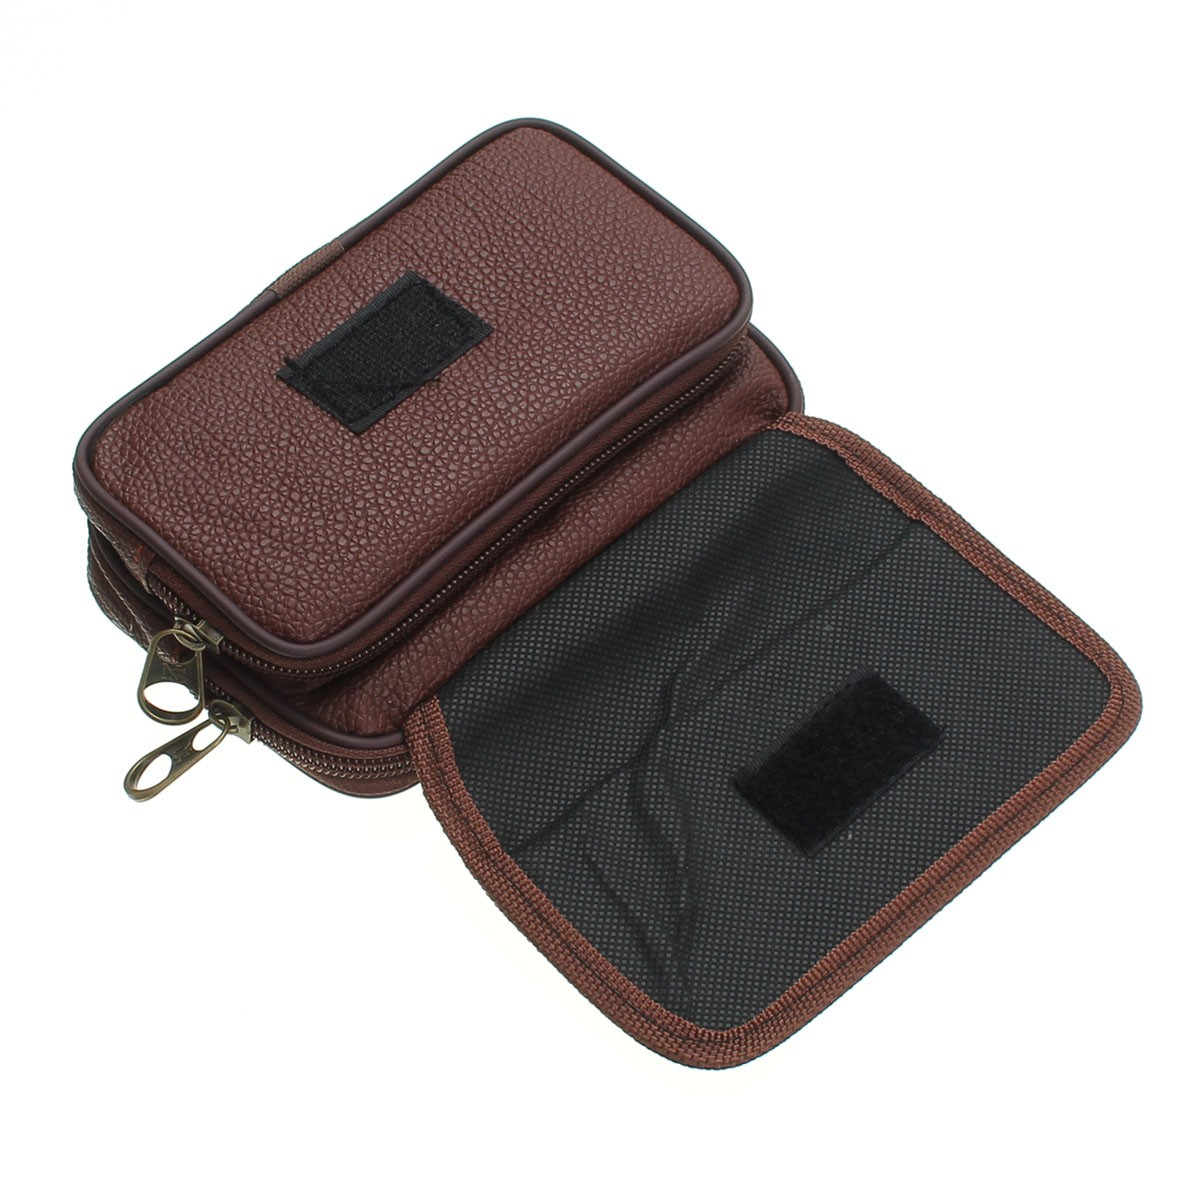 PU Leather Waist Belt Bag Phone Bag Running Wallet Hip Purse Tote Outdoor Sports Travel Camping